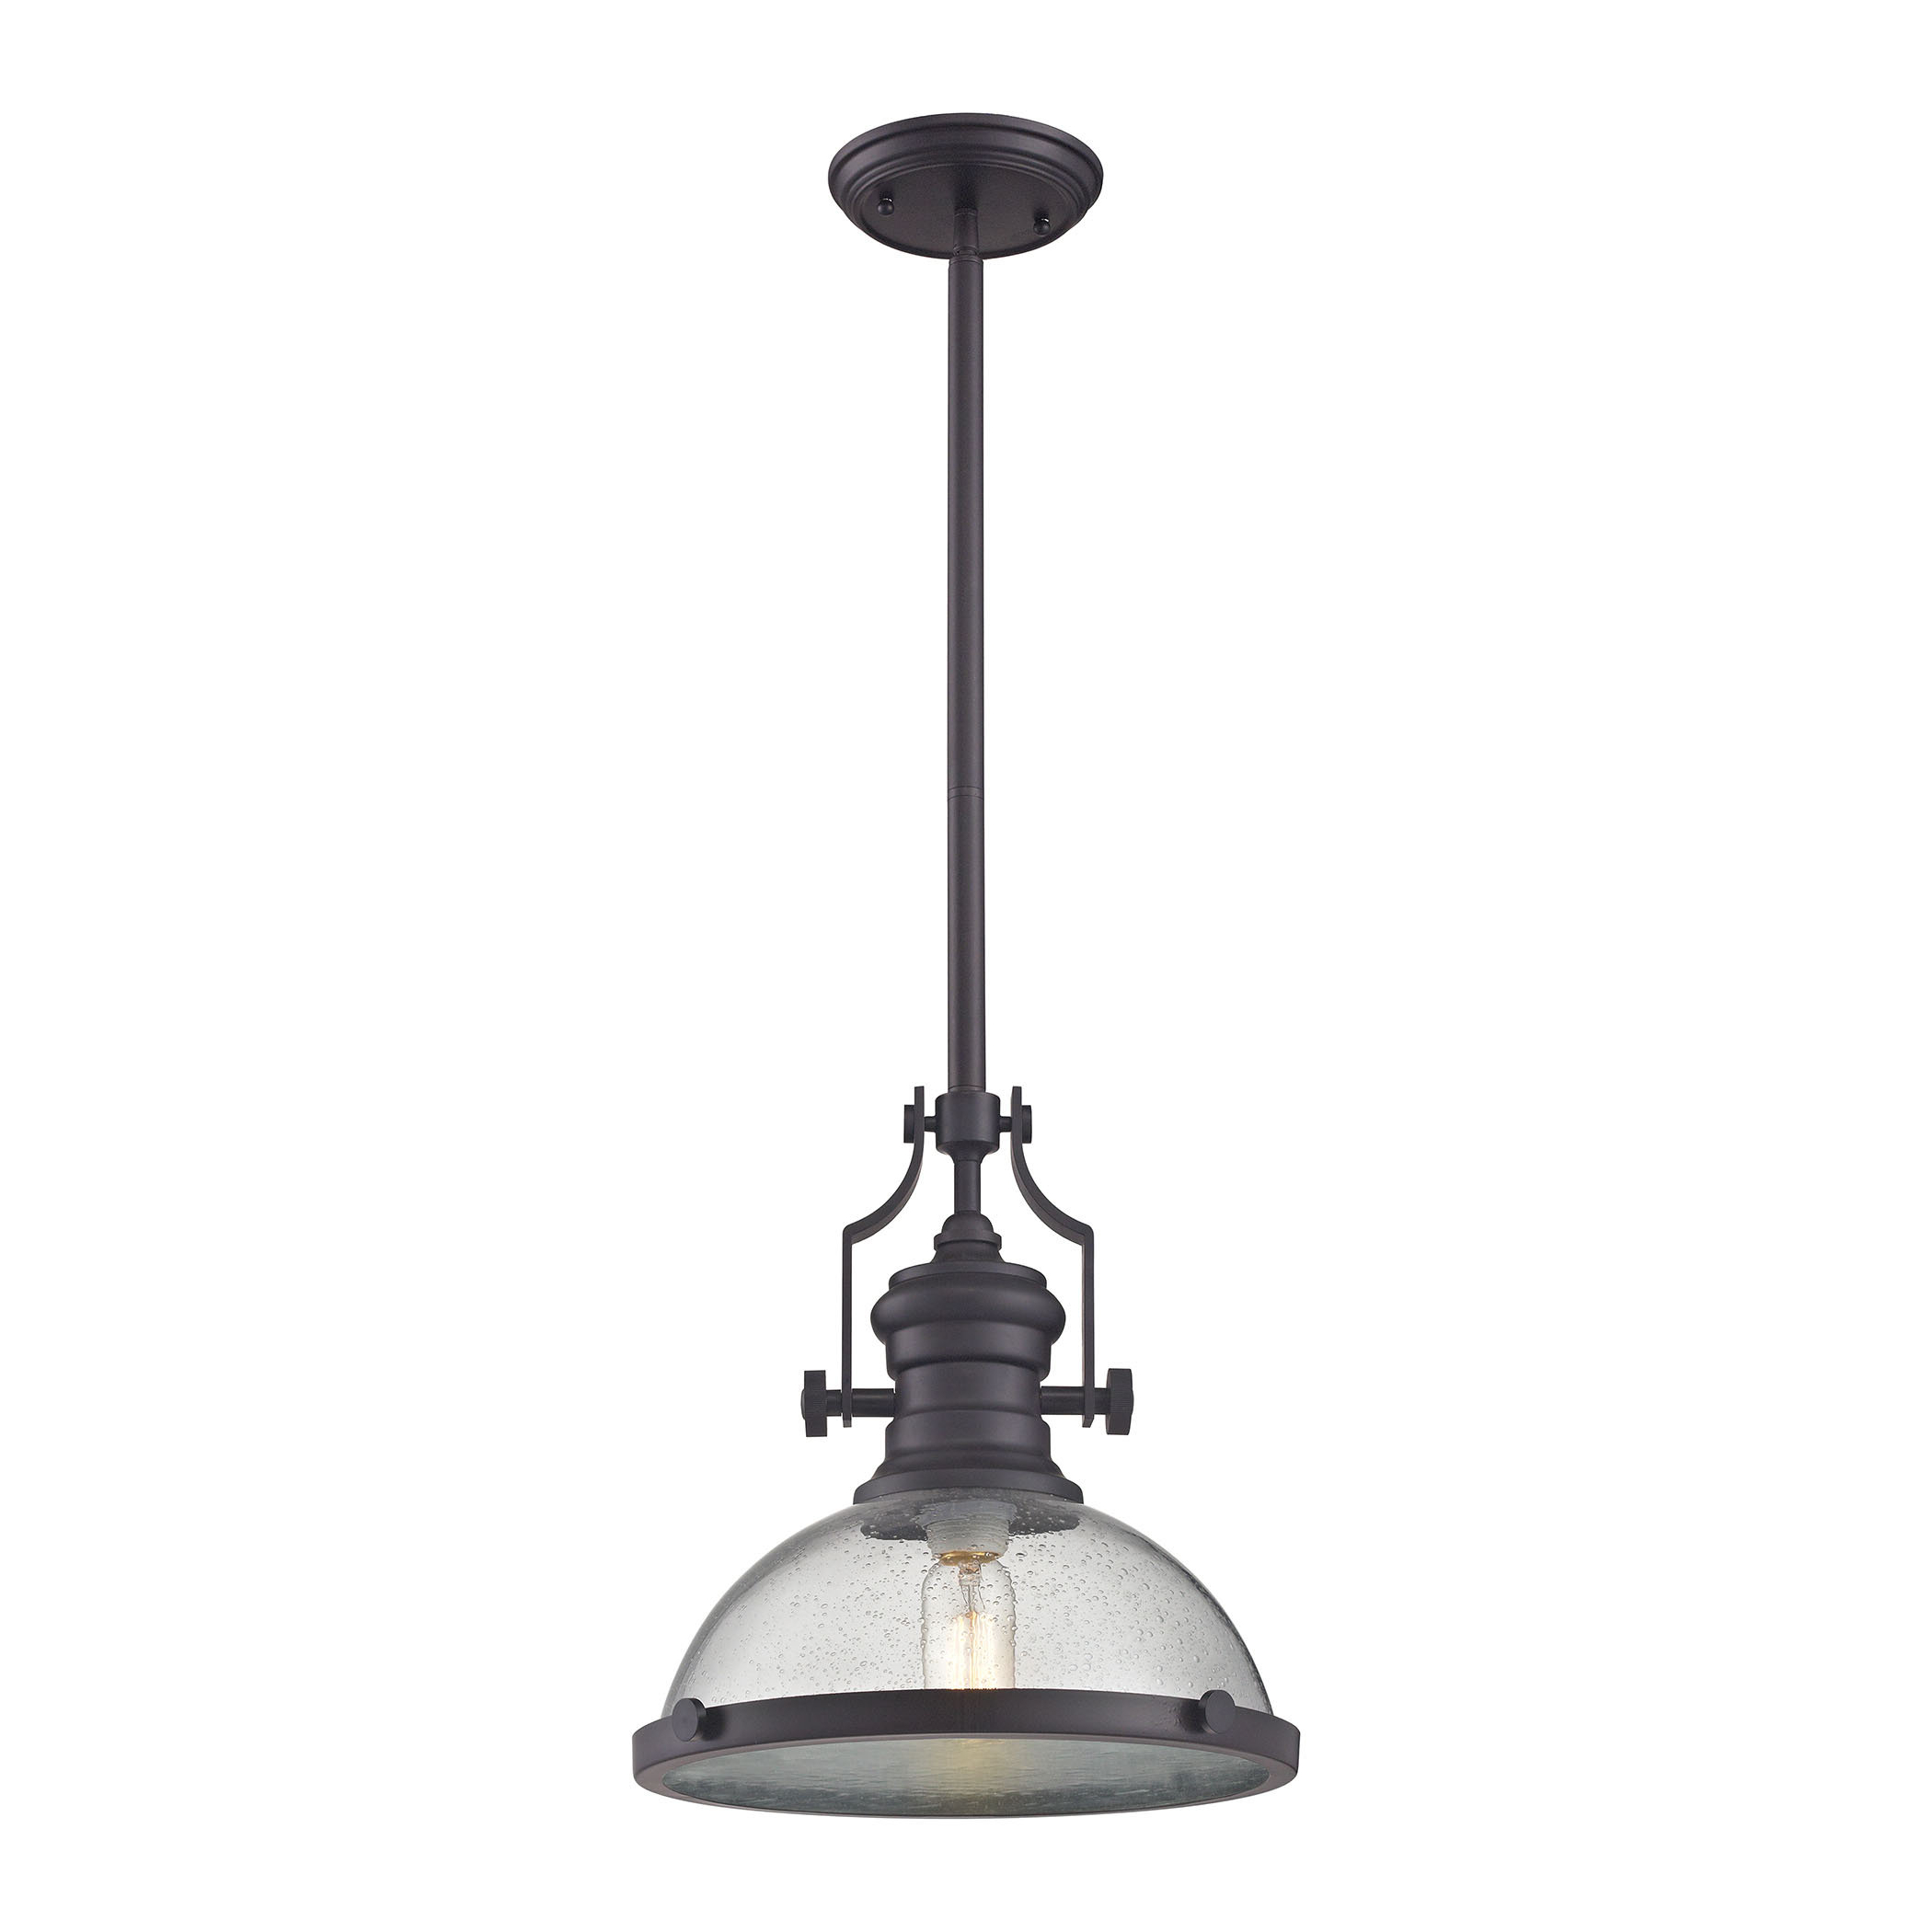 Well Liked Pewter & Silver & Satin Nickel Pendant Lighting You'll Love In Kimsey 1 Light Teardrop Pendants (View 25 of 25)